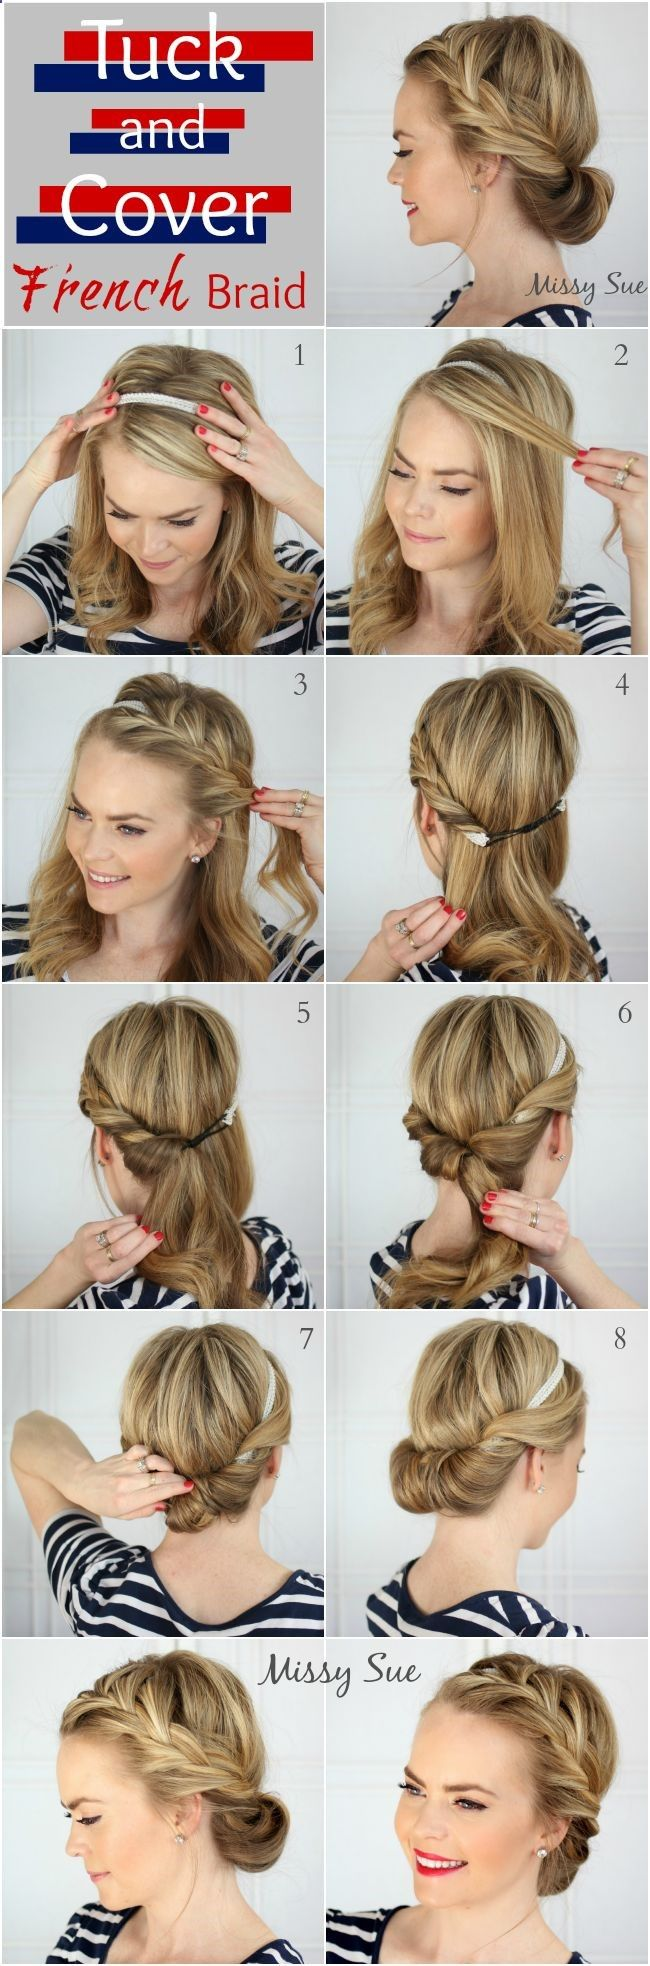 Tuck and Cover French Braid updo